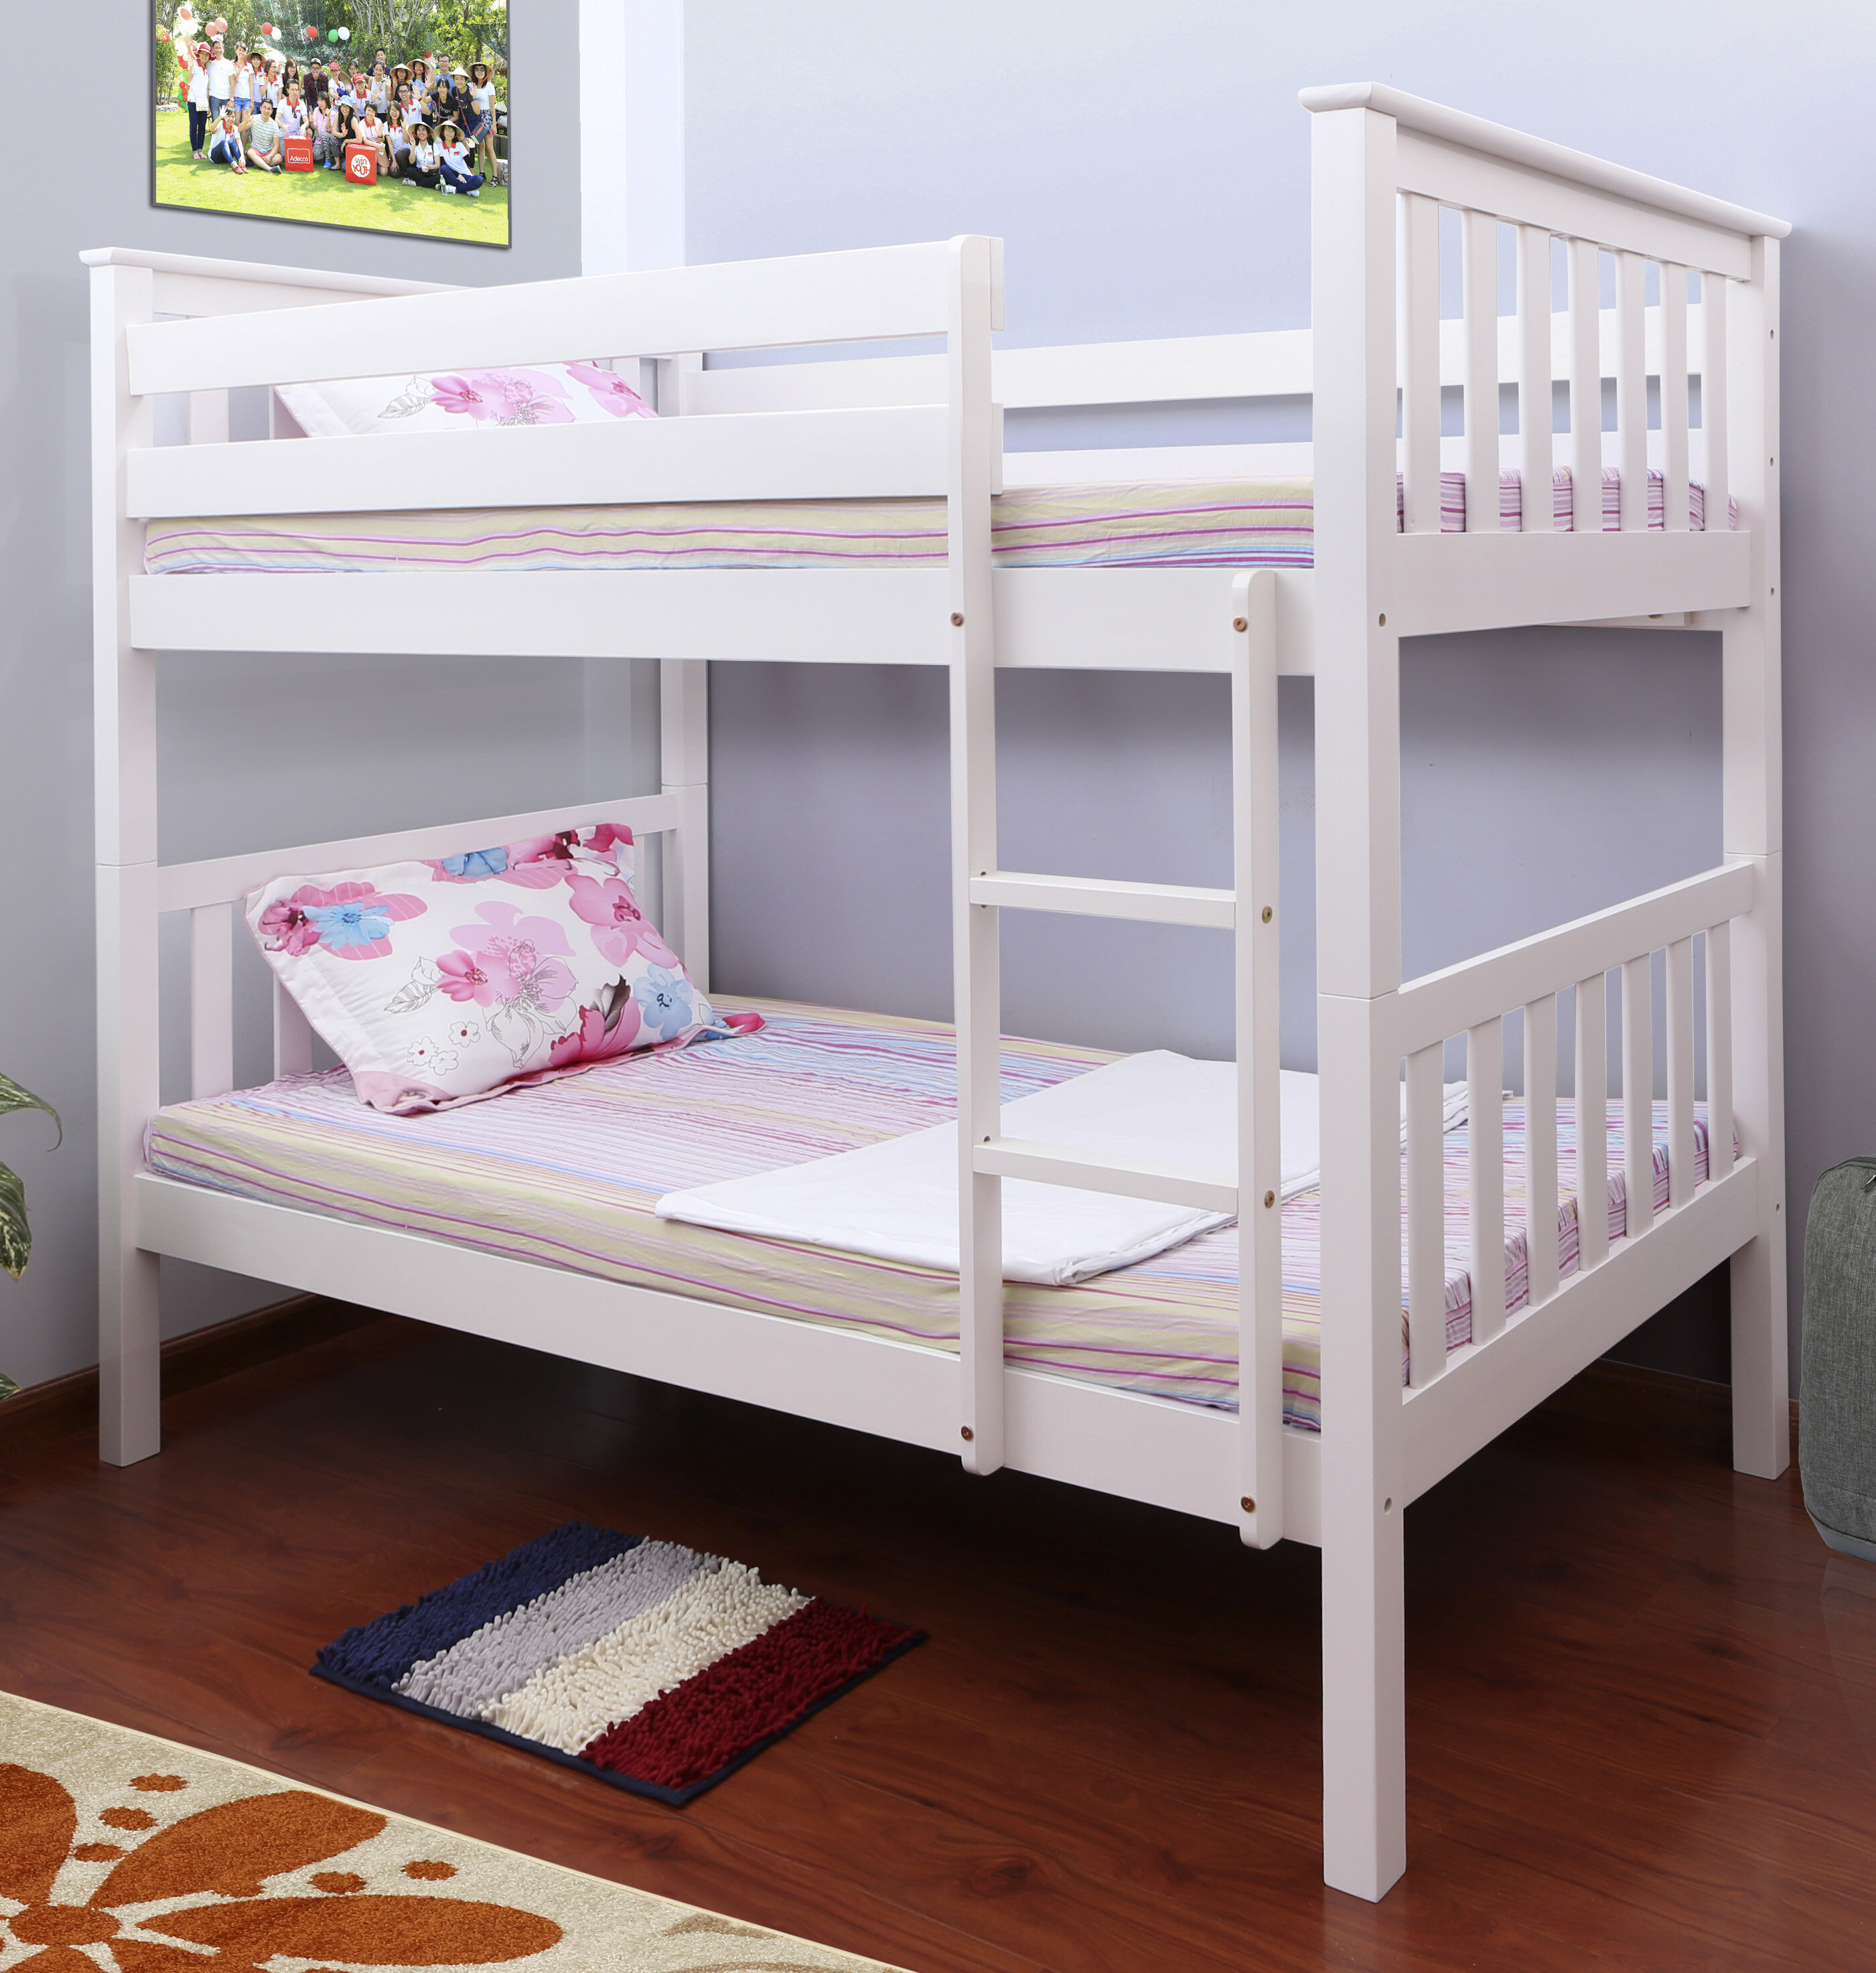 handmade built ceiling t bunks tshape low bargain shape beds triple bunk upstate style the in furniture